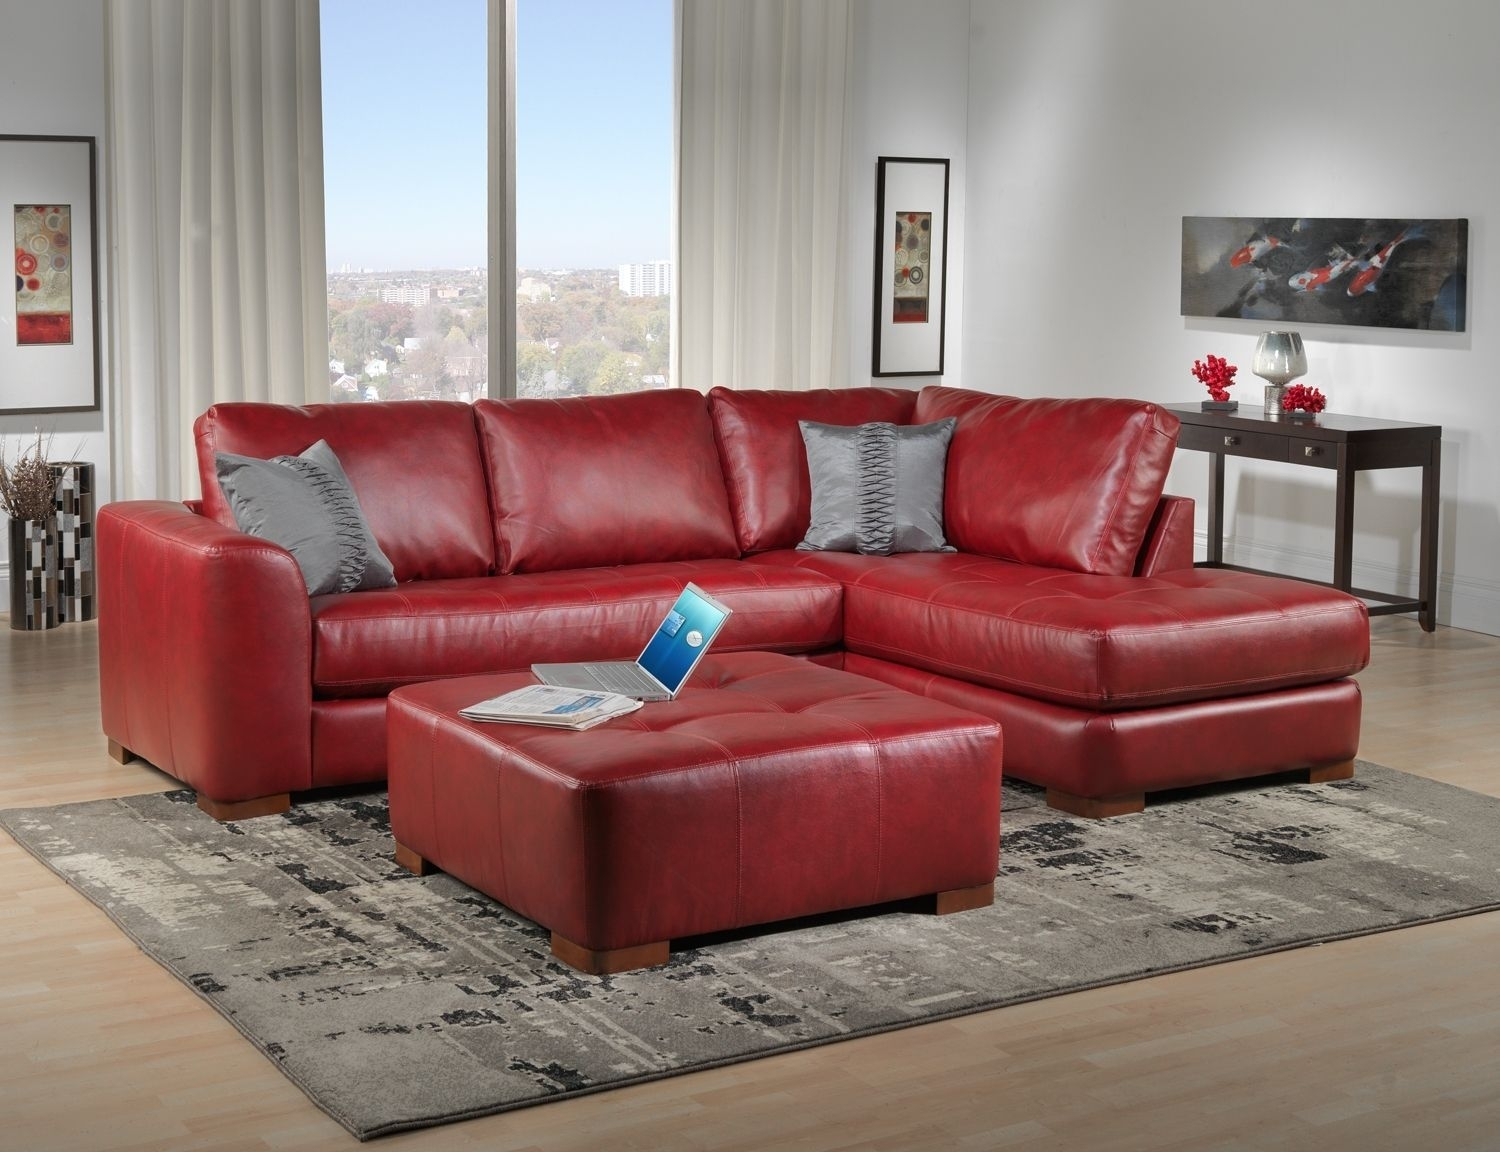 I Want A Red Leather Couch (Image 4 of 10)